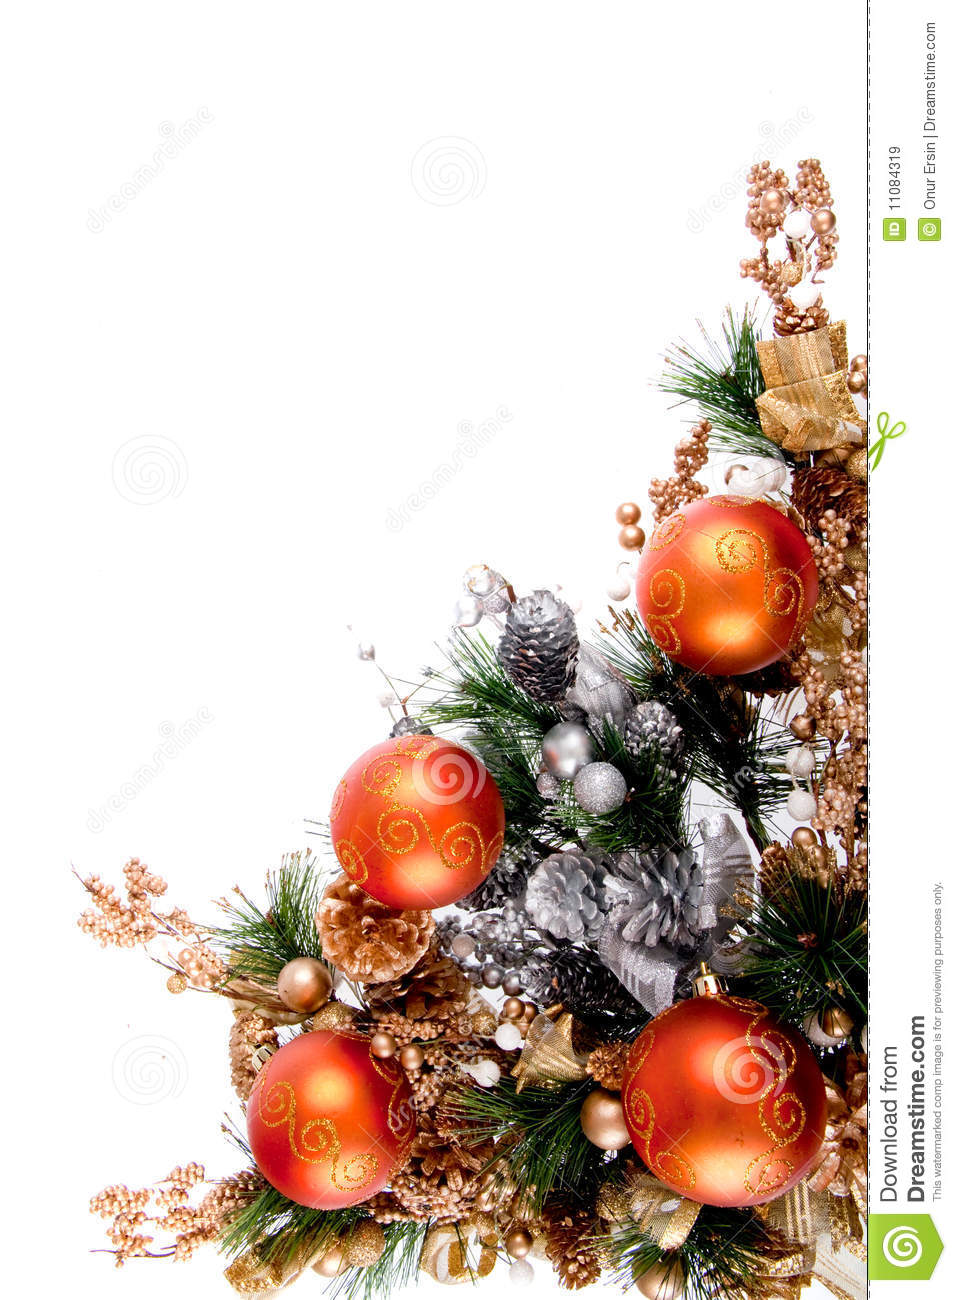 Christmas ornament corner decoration series royalty free